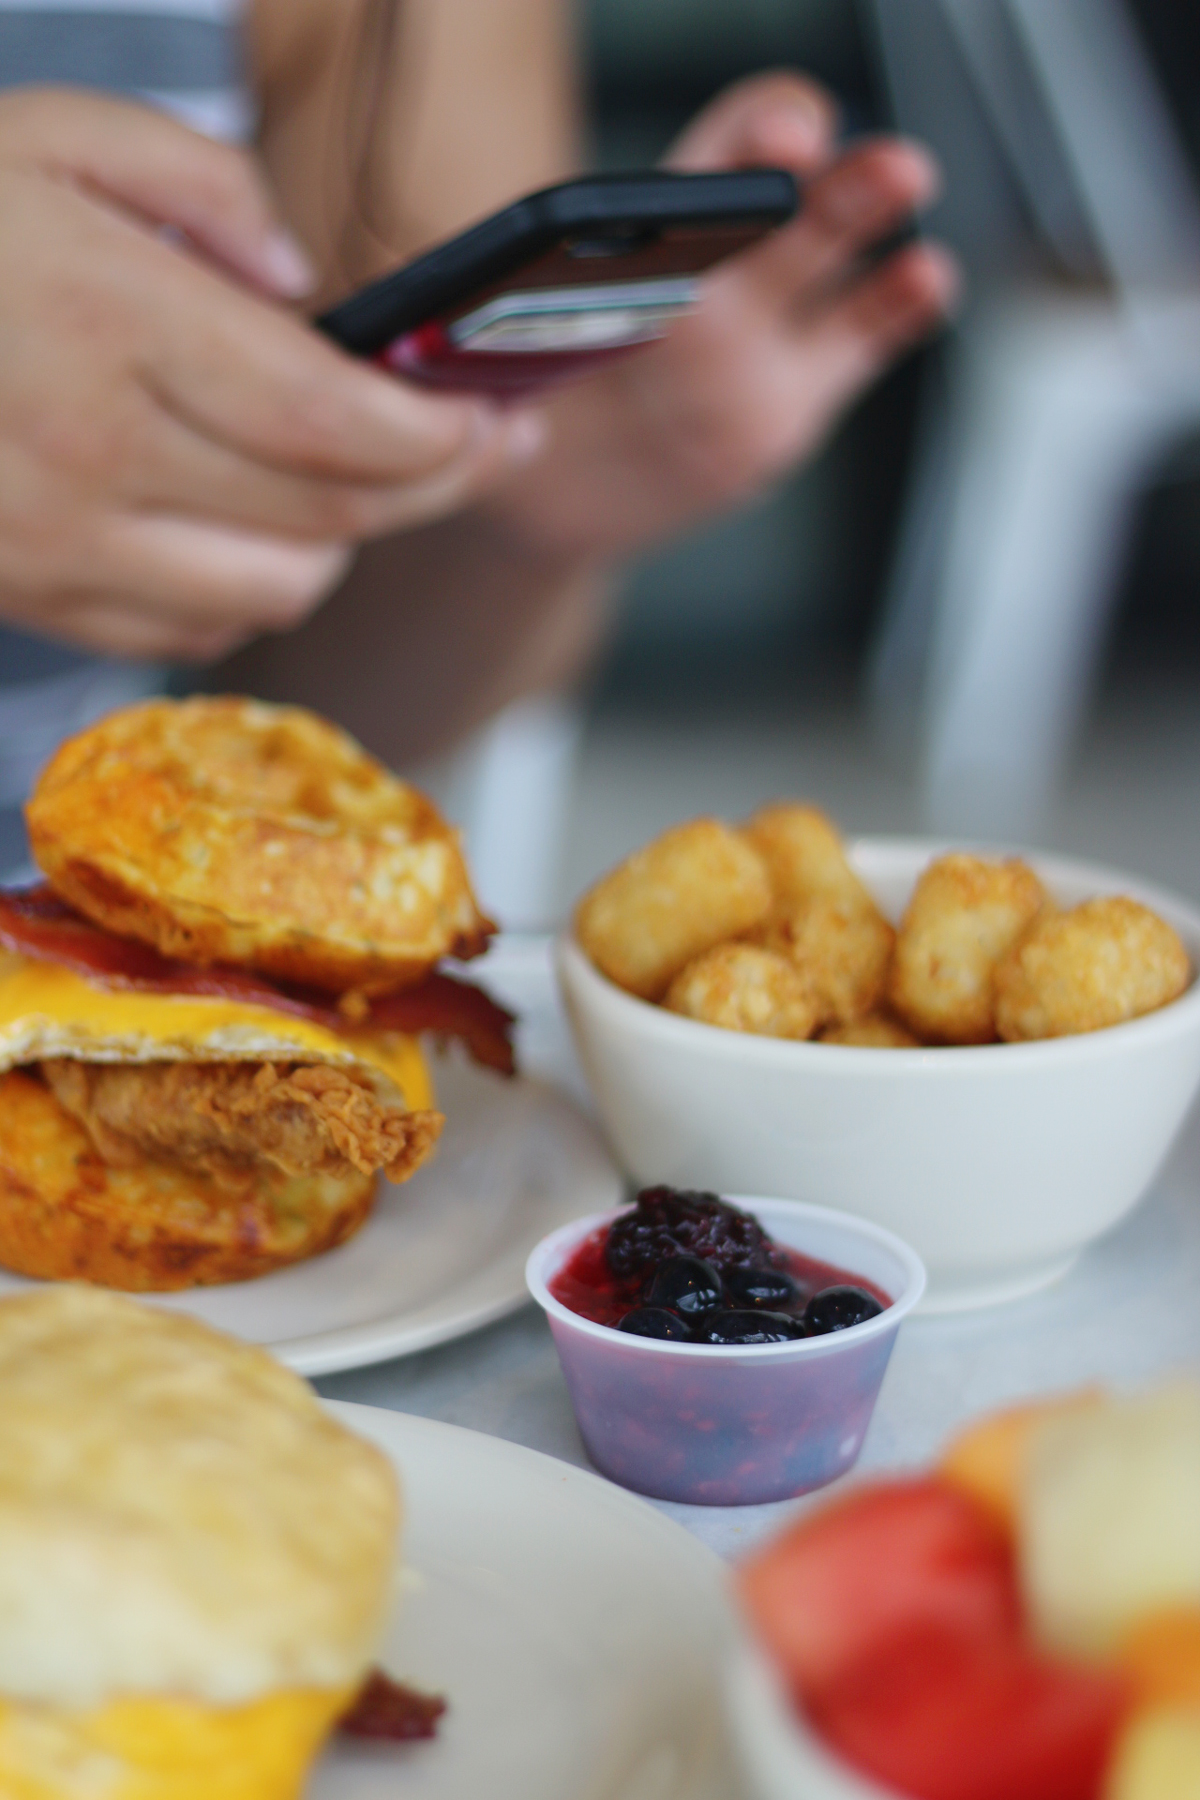 Spring Chicken serves Southern inspired comfort food in Coral Gables, Florida near Miami.